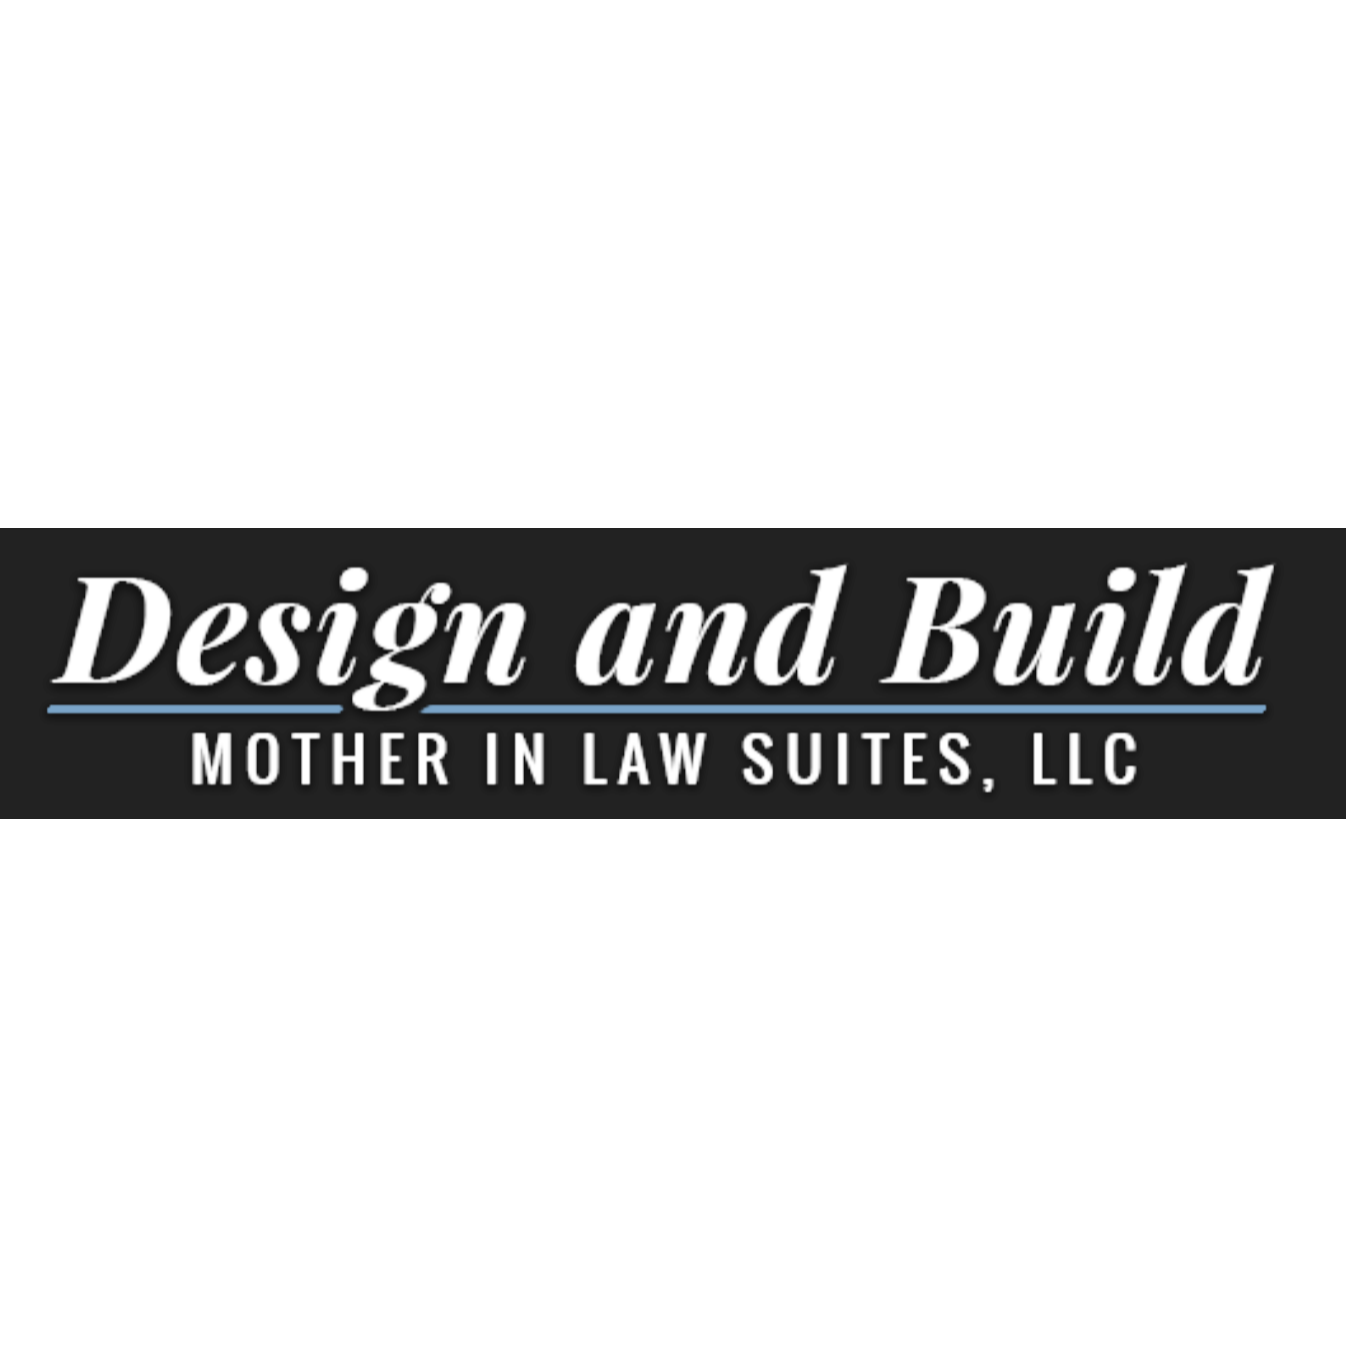 Design and Build Mother in Law Suites, LLC